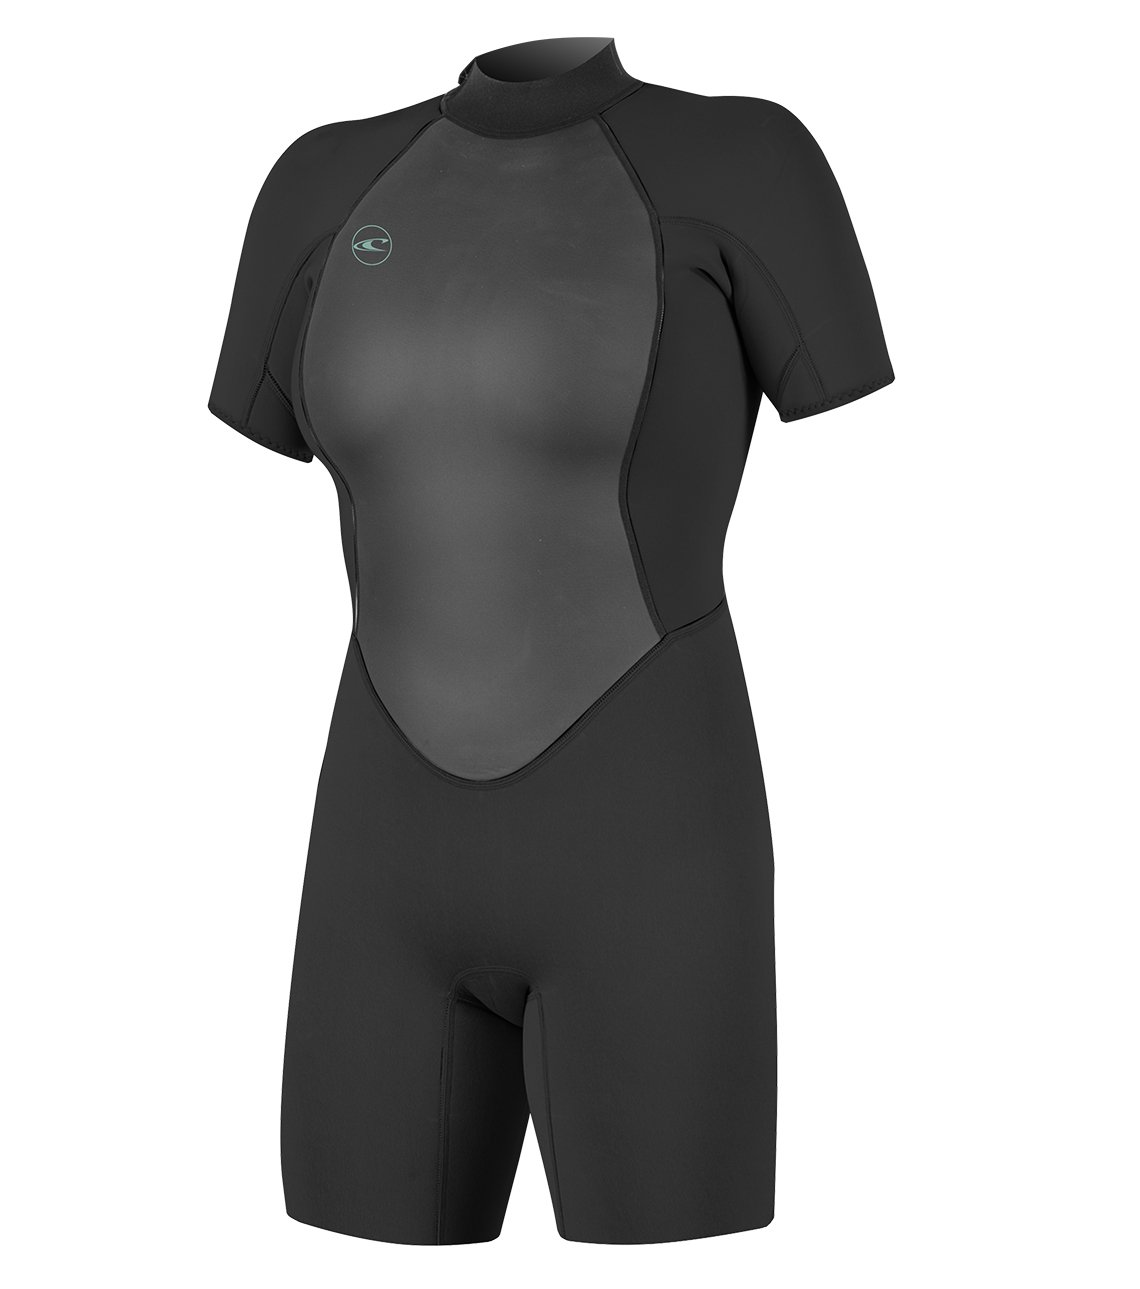 O'Neill Women's Reactor-2 2mm Back Zip Short Sleeve Spring Wetsuit, Black, 8 by O'Neill Wetsuits